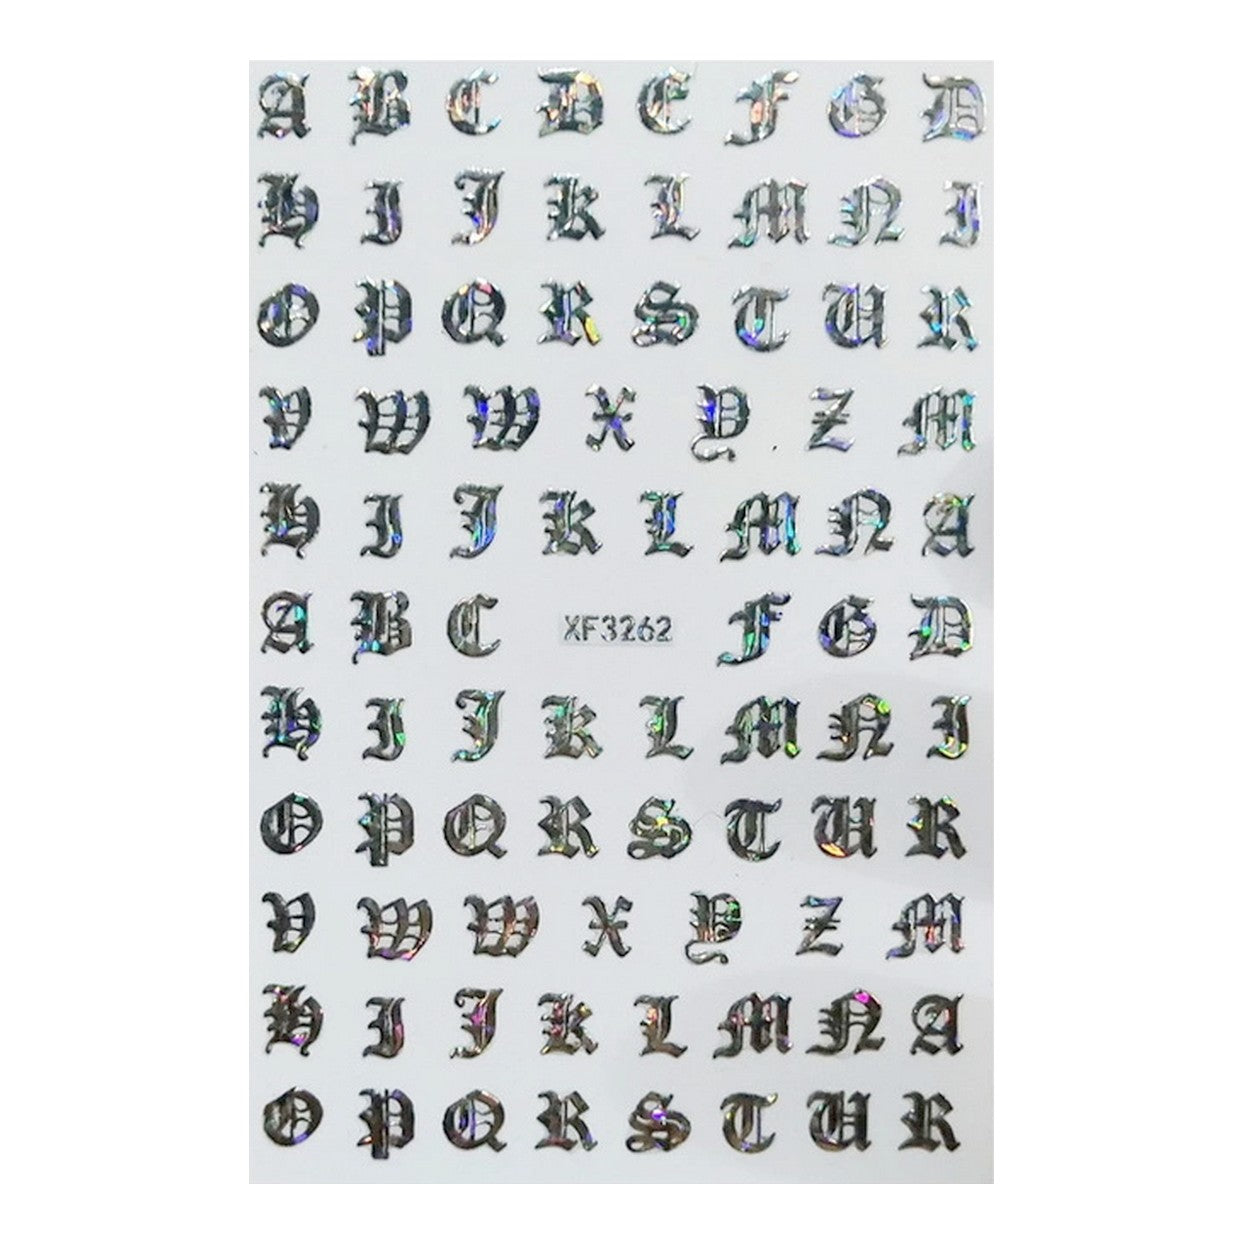 Font Petite Gothic English Silver Holo Nail Stickers